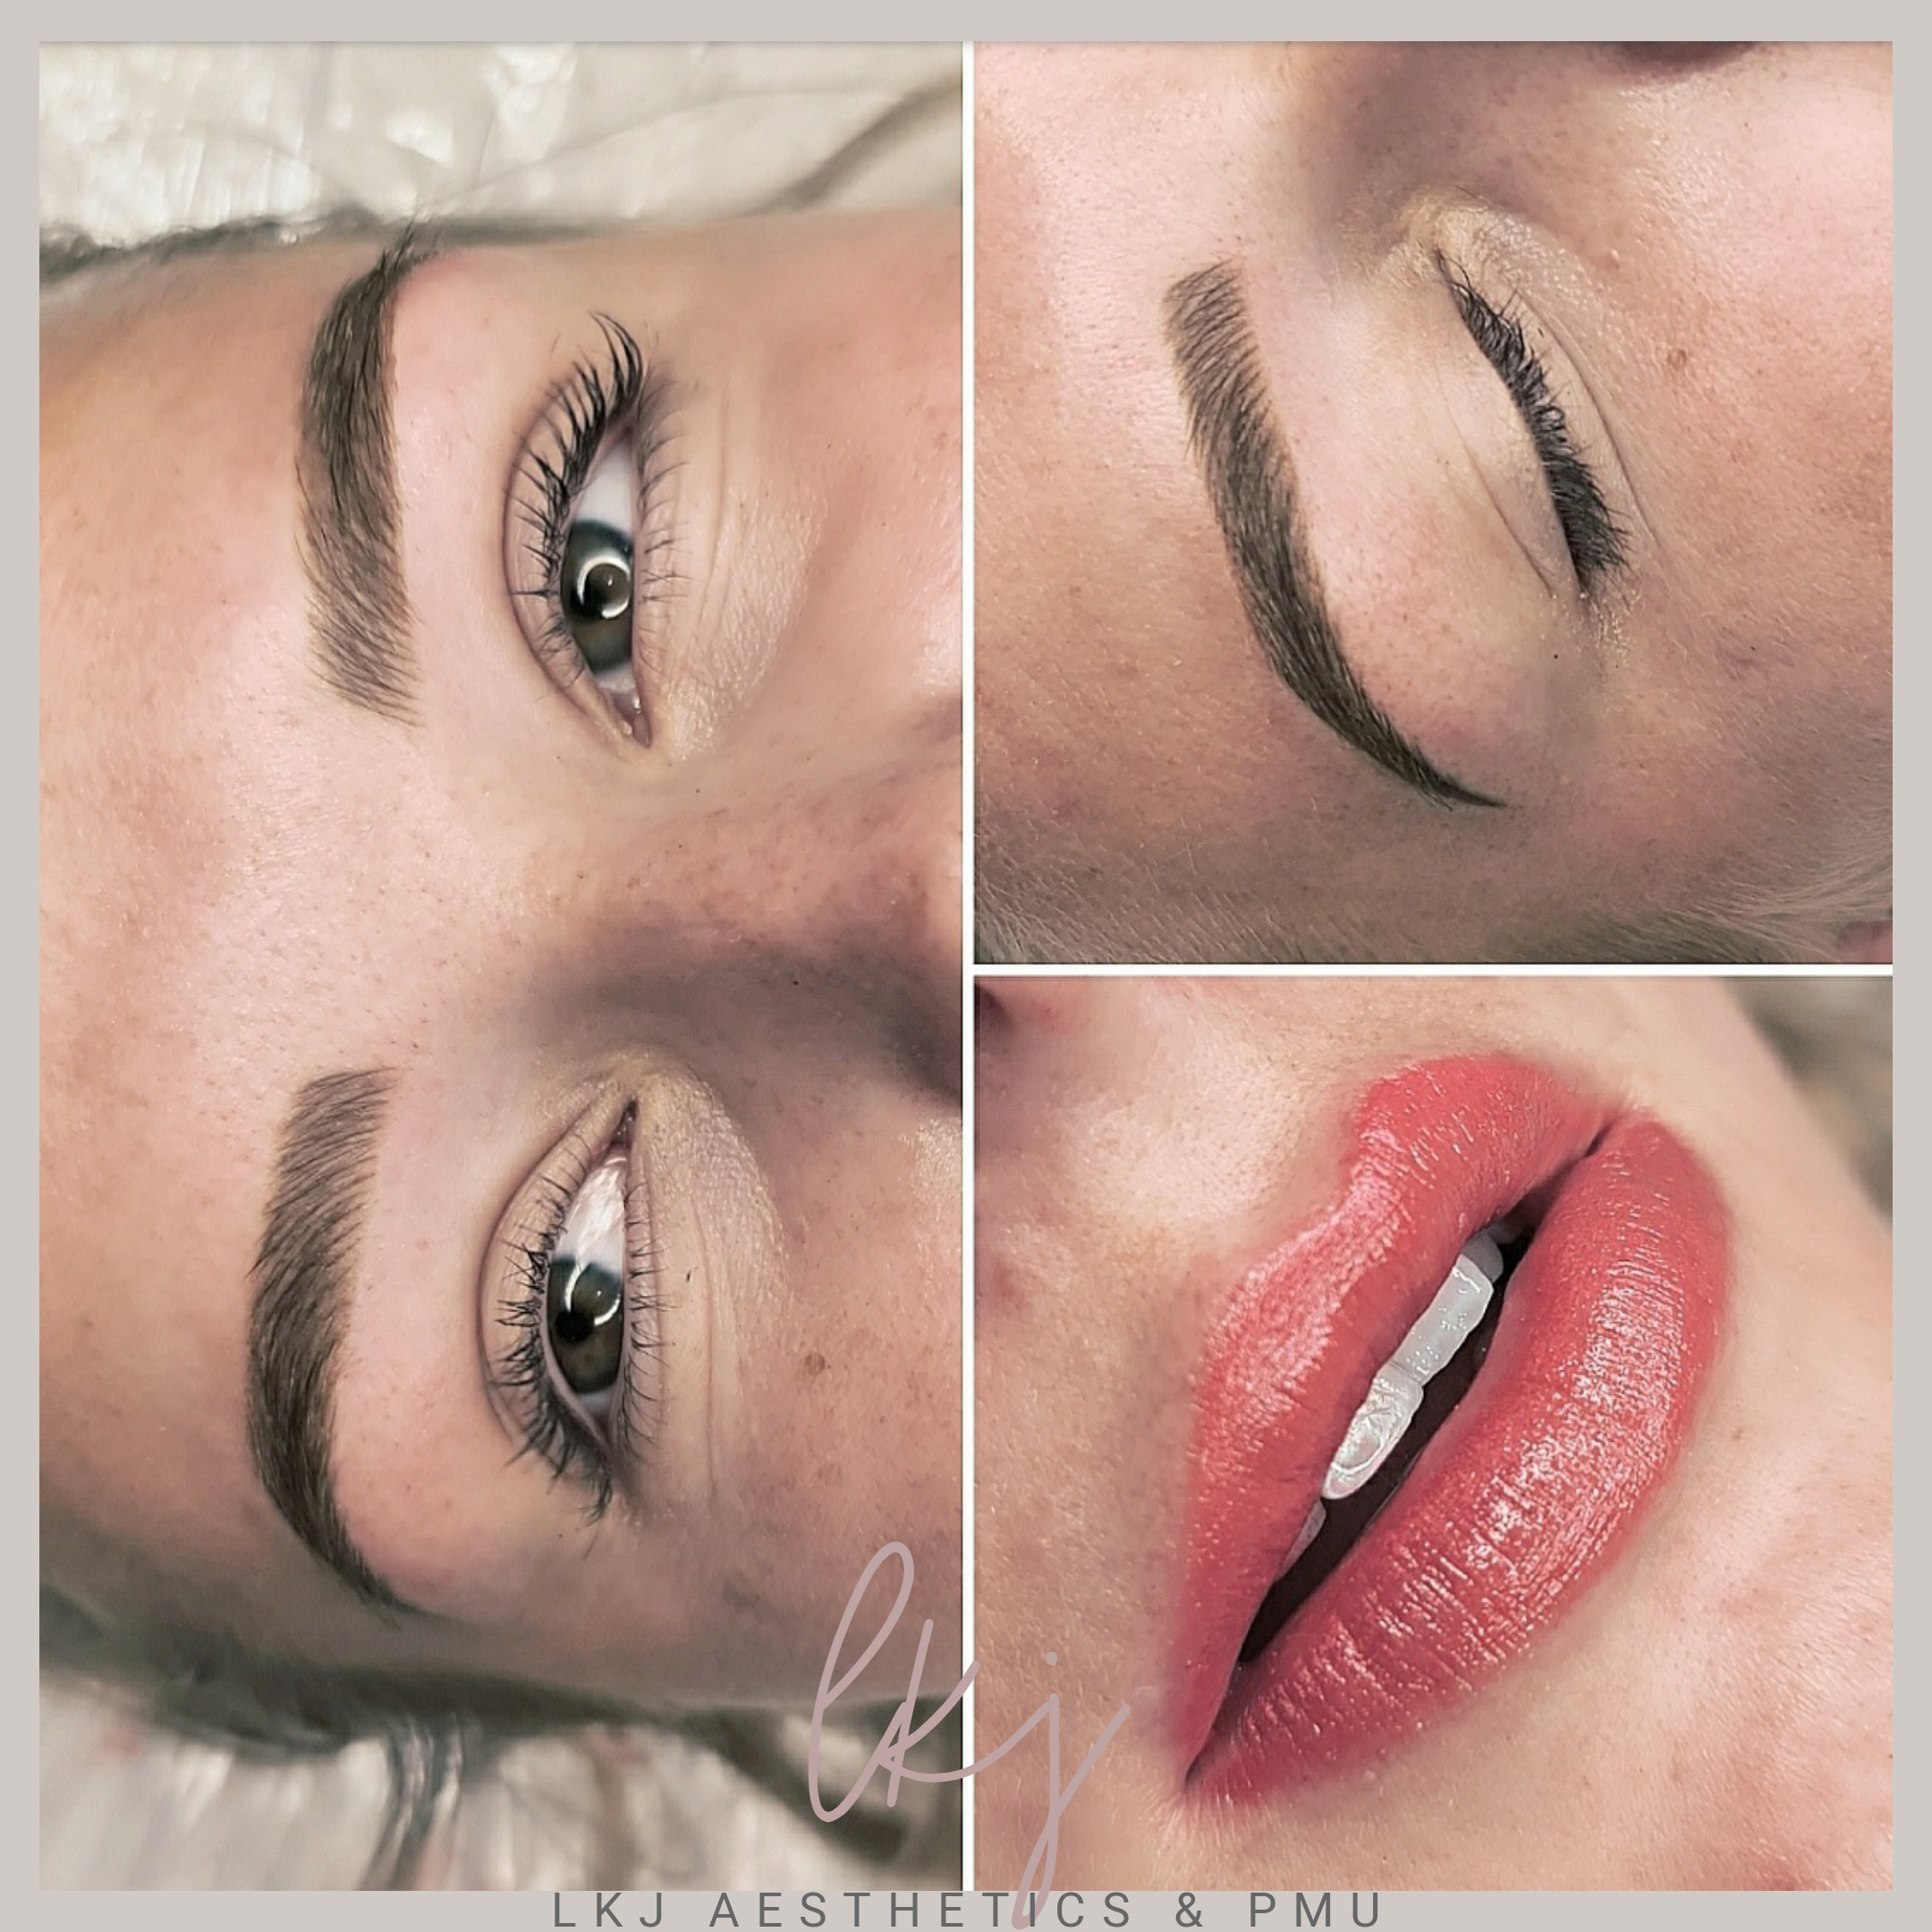 Lip Blush Tattoo & Combo Brow